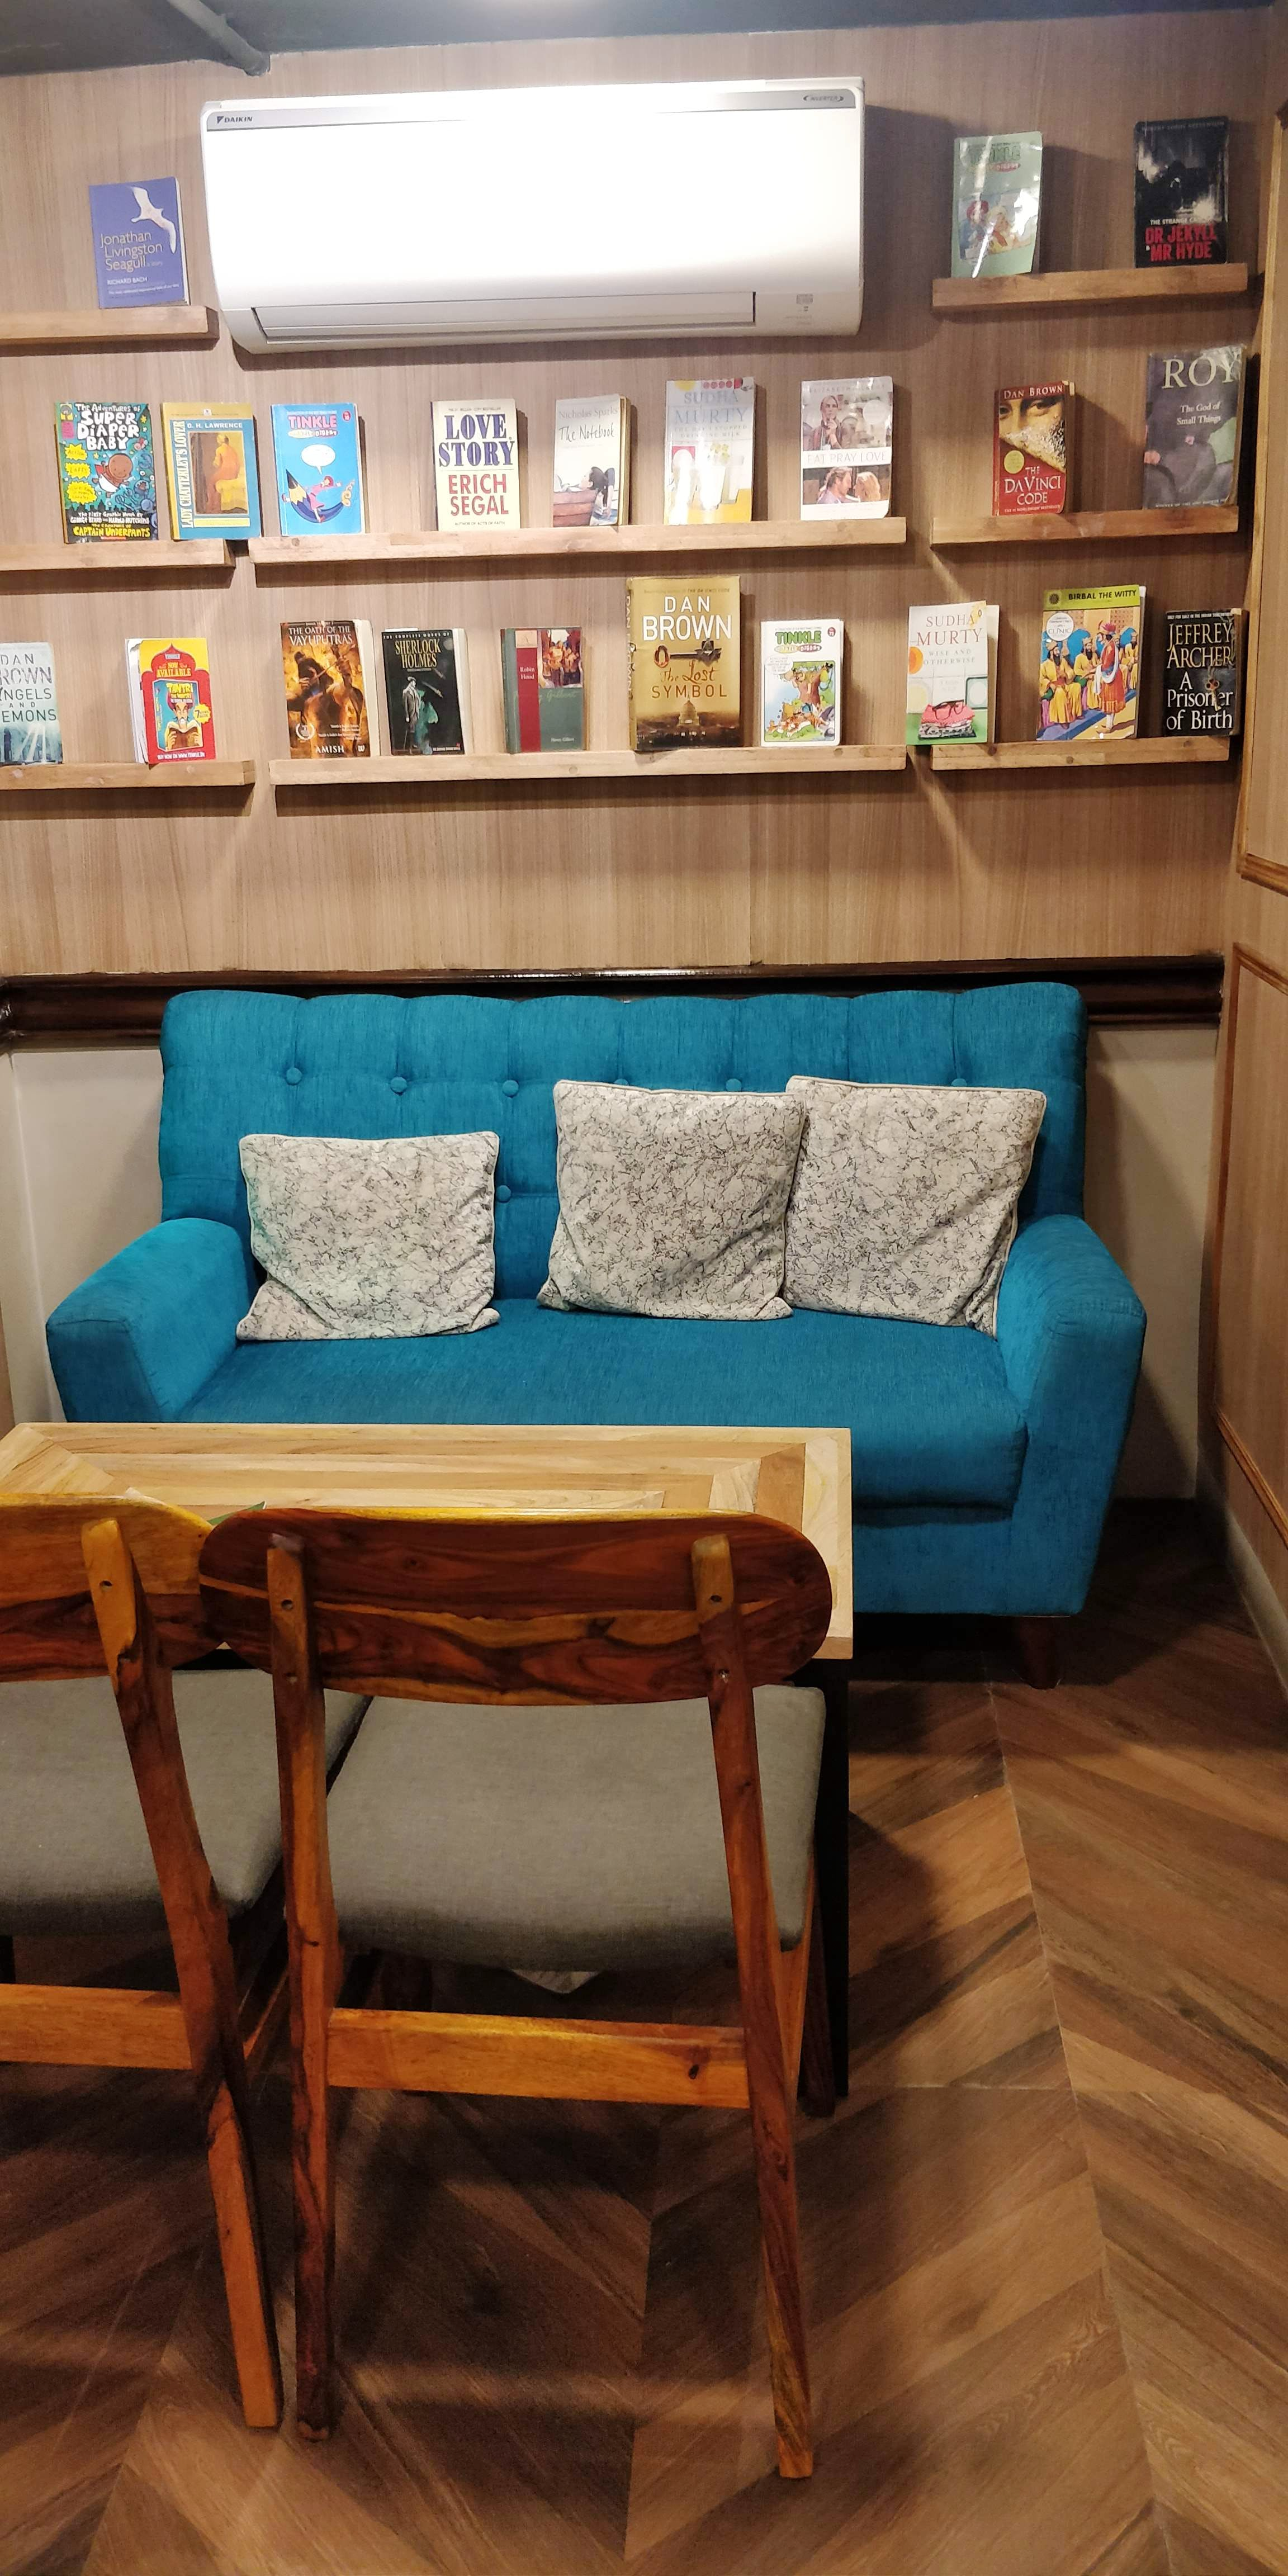 Furniture,Room,Table,Interior design,Living room,Floor,Turquoise,Couch,Hardwood,Coffee table